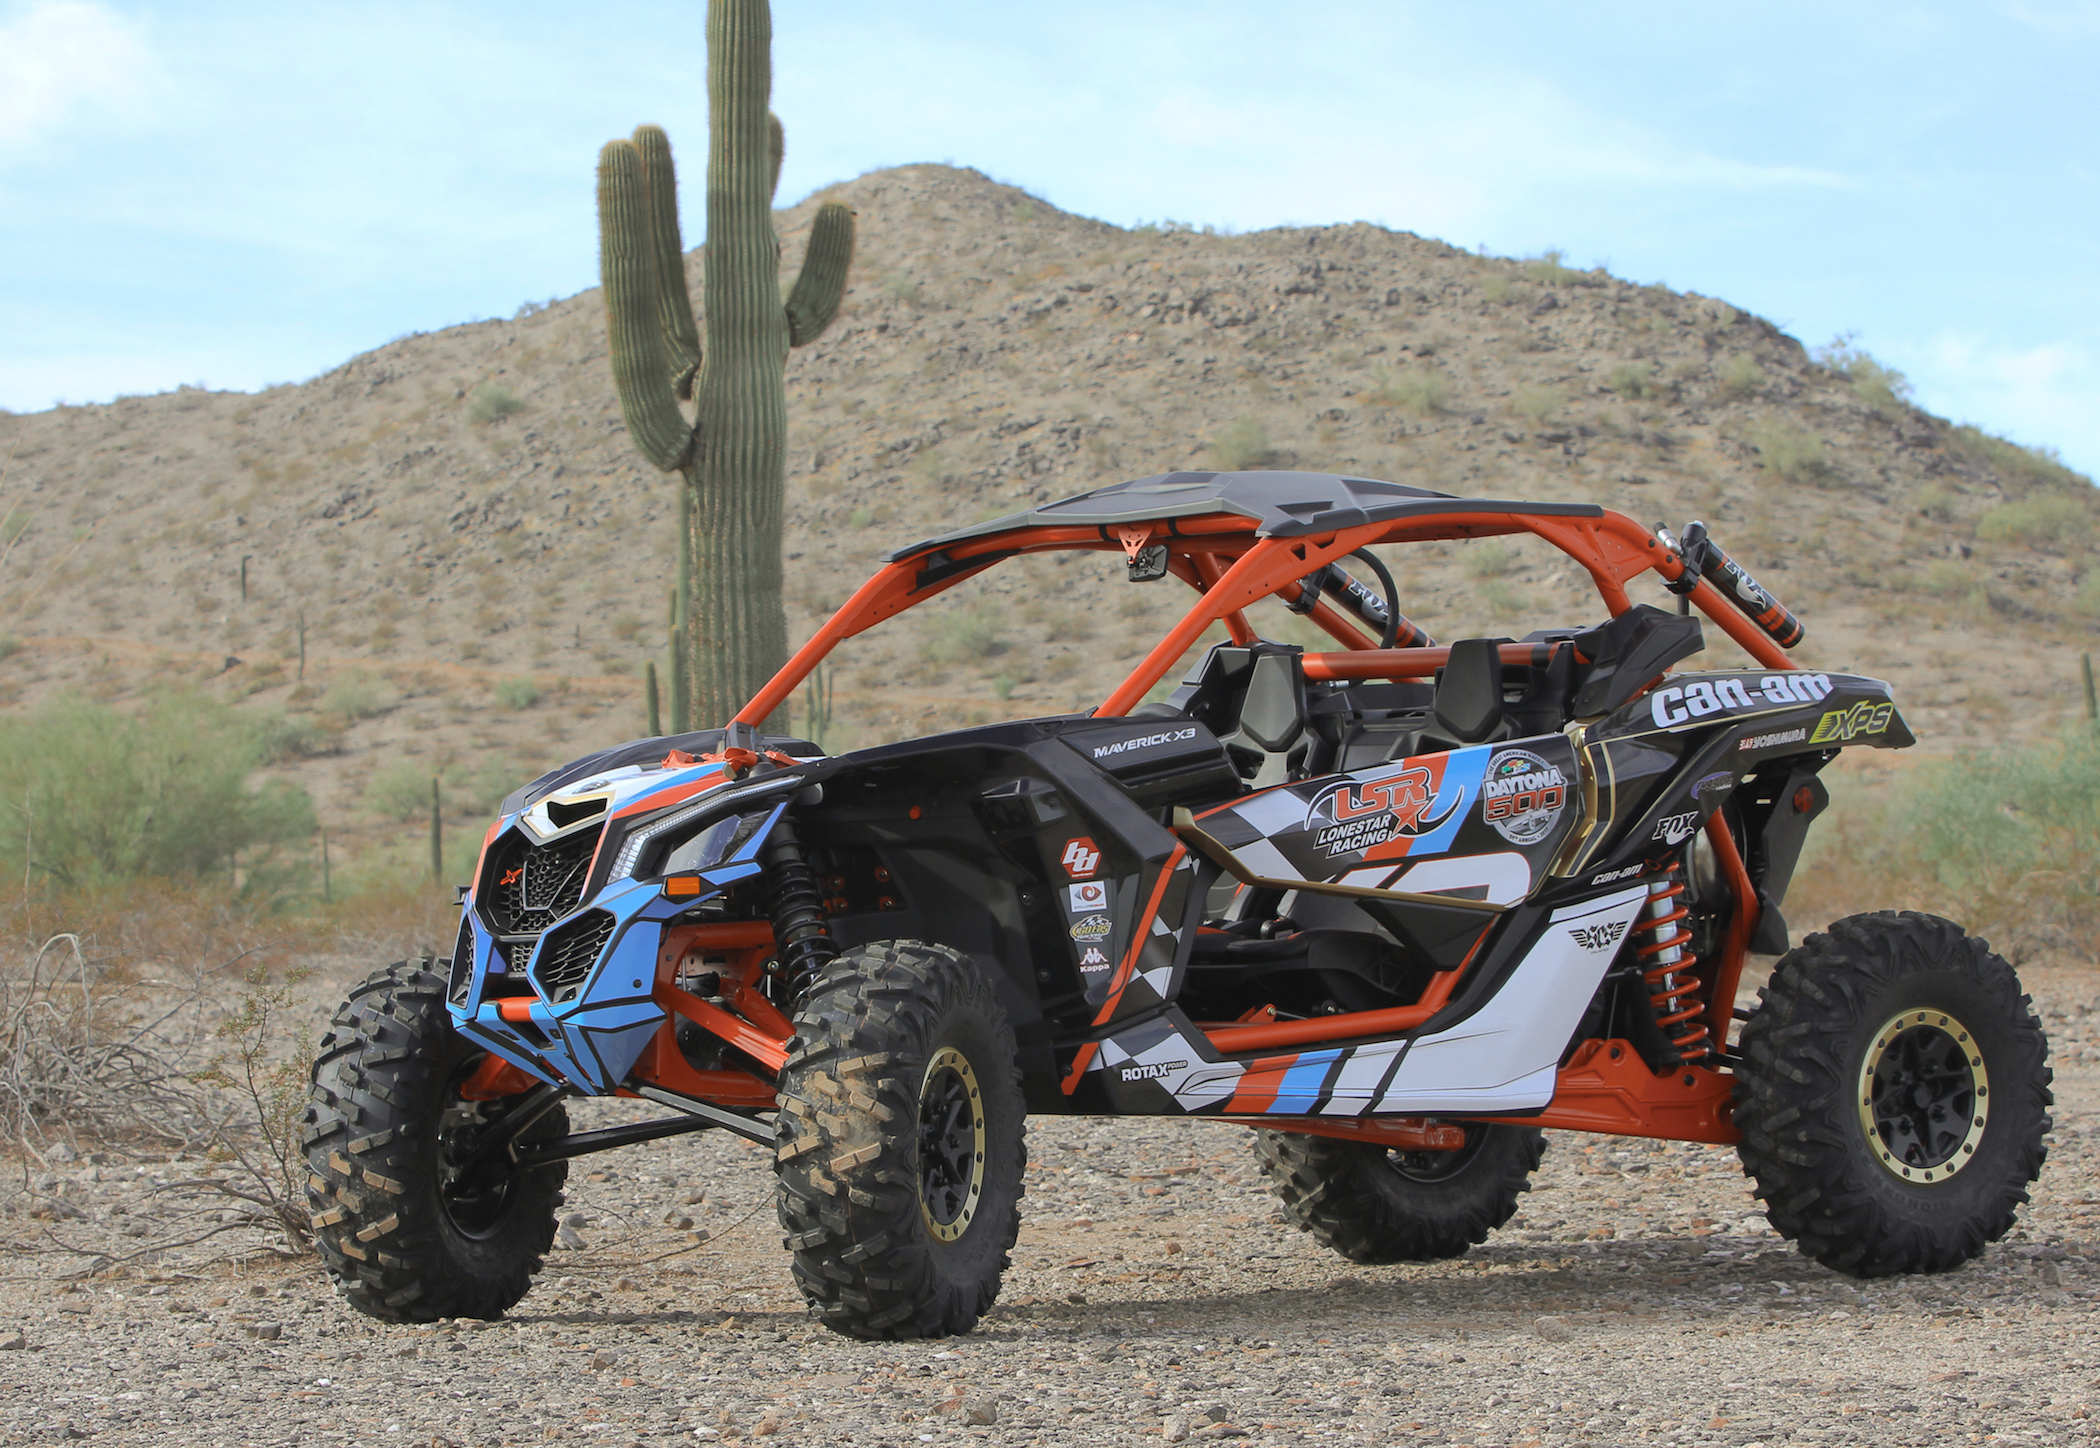 brp unveils race inspired can am maverick x3 utv guide. Black Bedroom Furniture Sets. Home Design Ideas